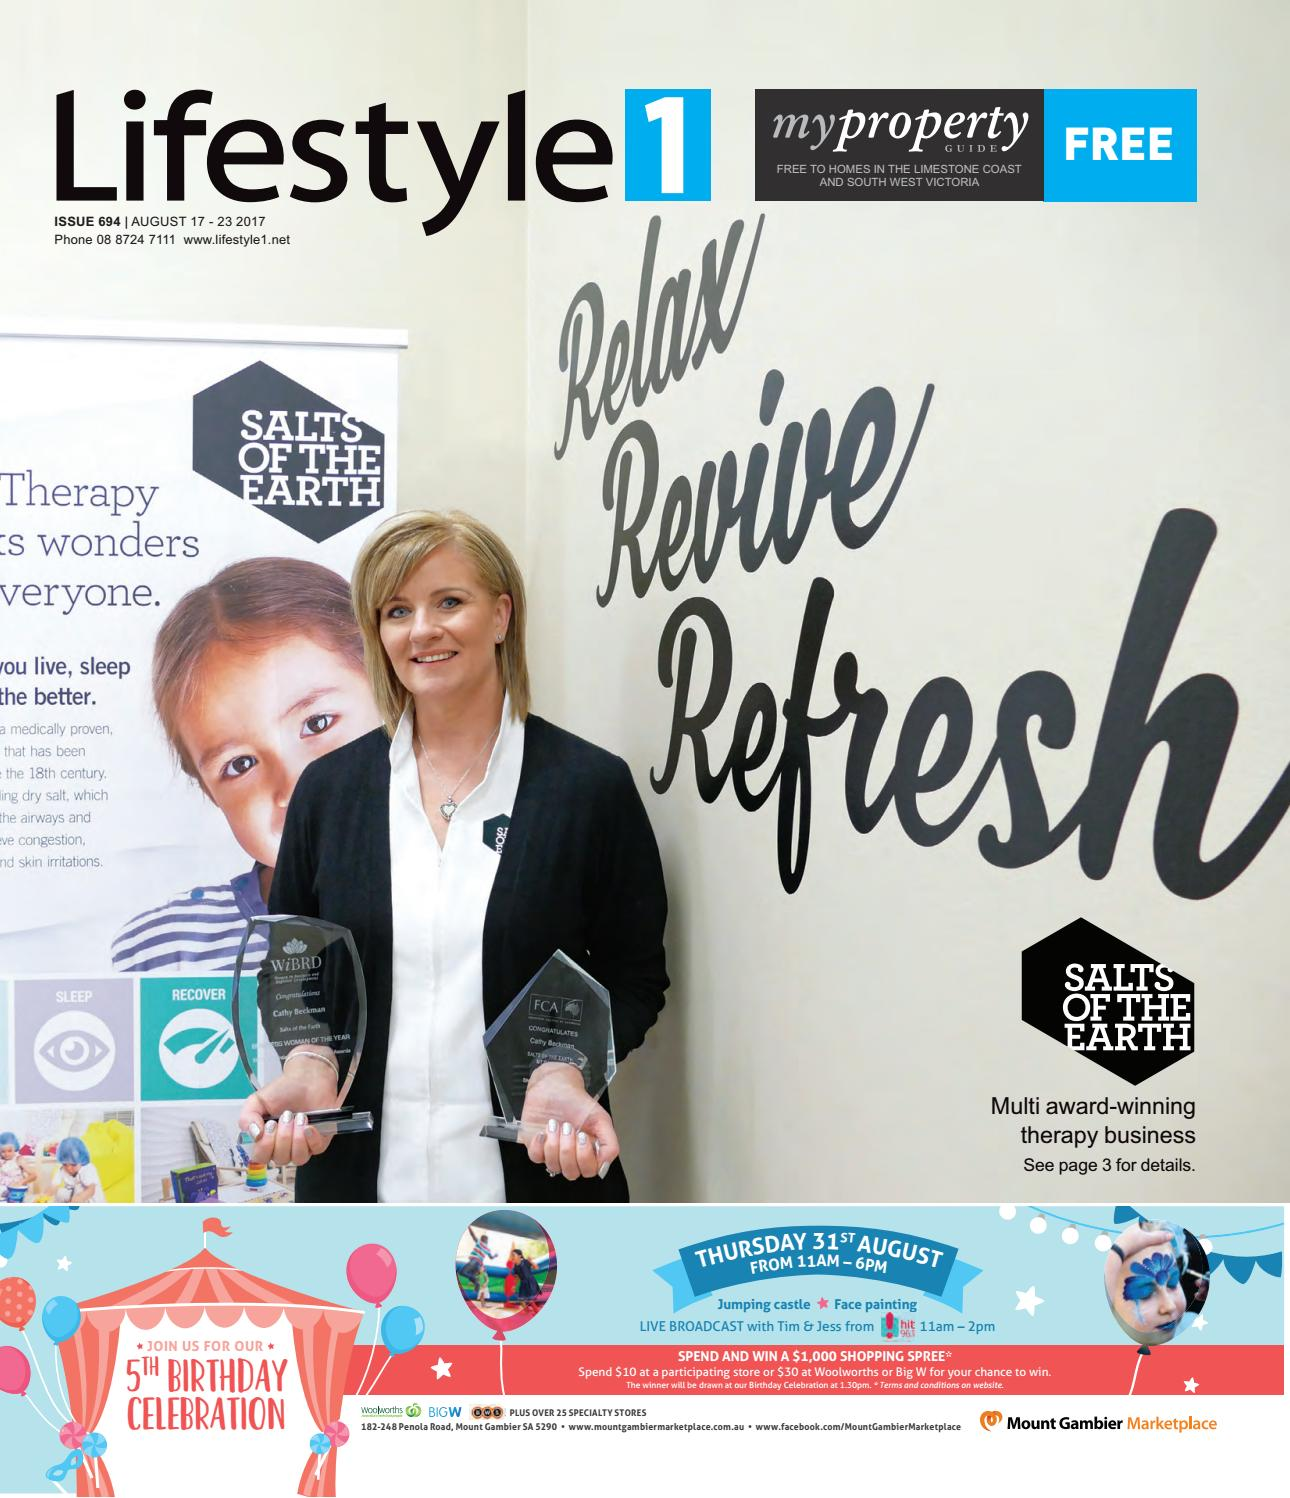 Lifestyle 1 Issue 694 By Lifestyle1 Issuu How To Replace A 3way Switch Kanderson Enterprises